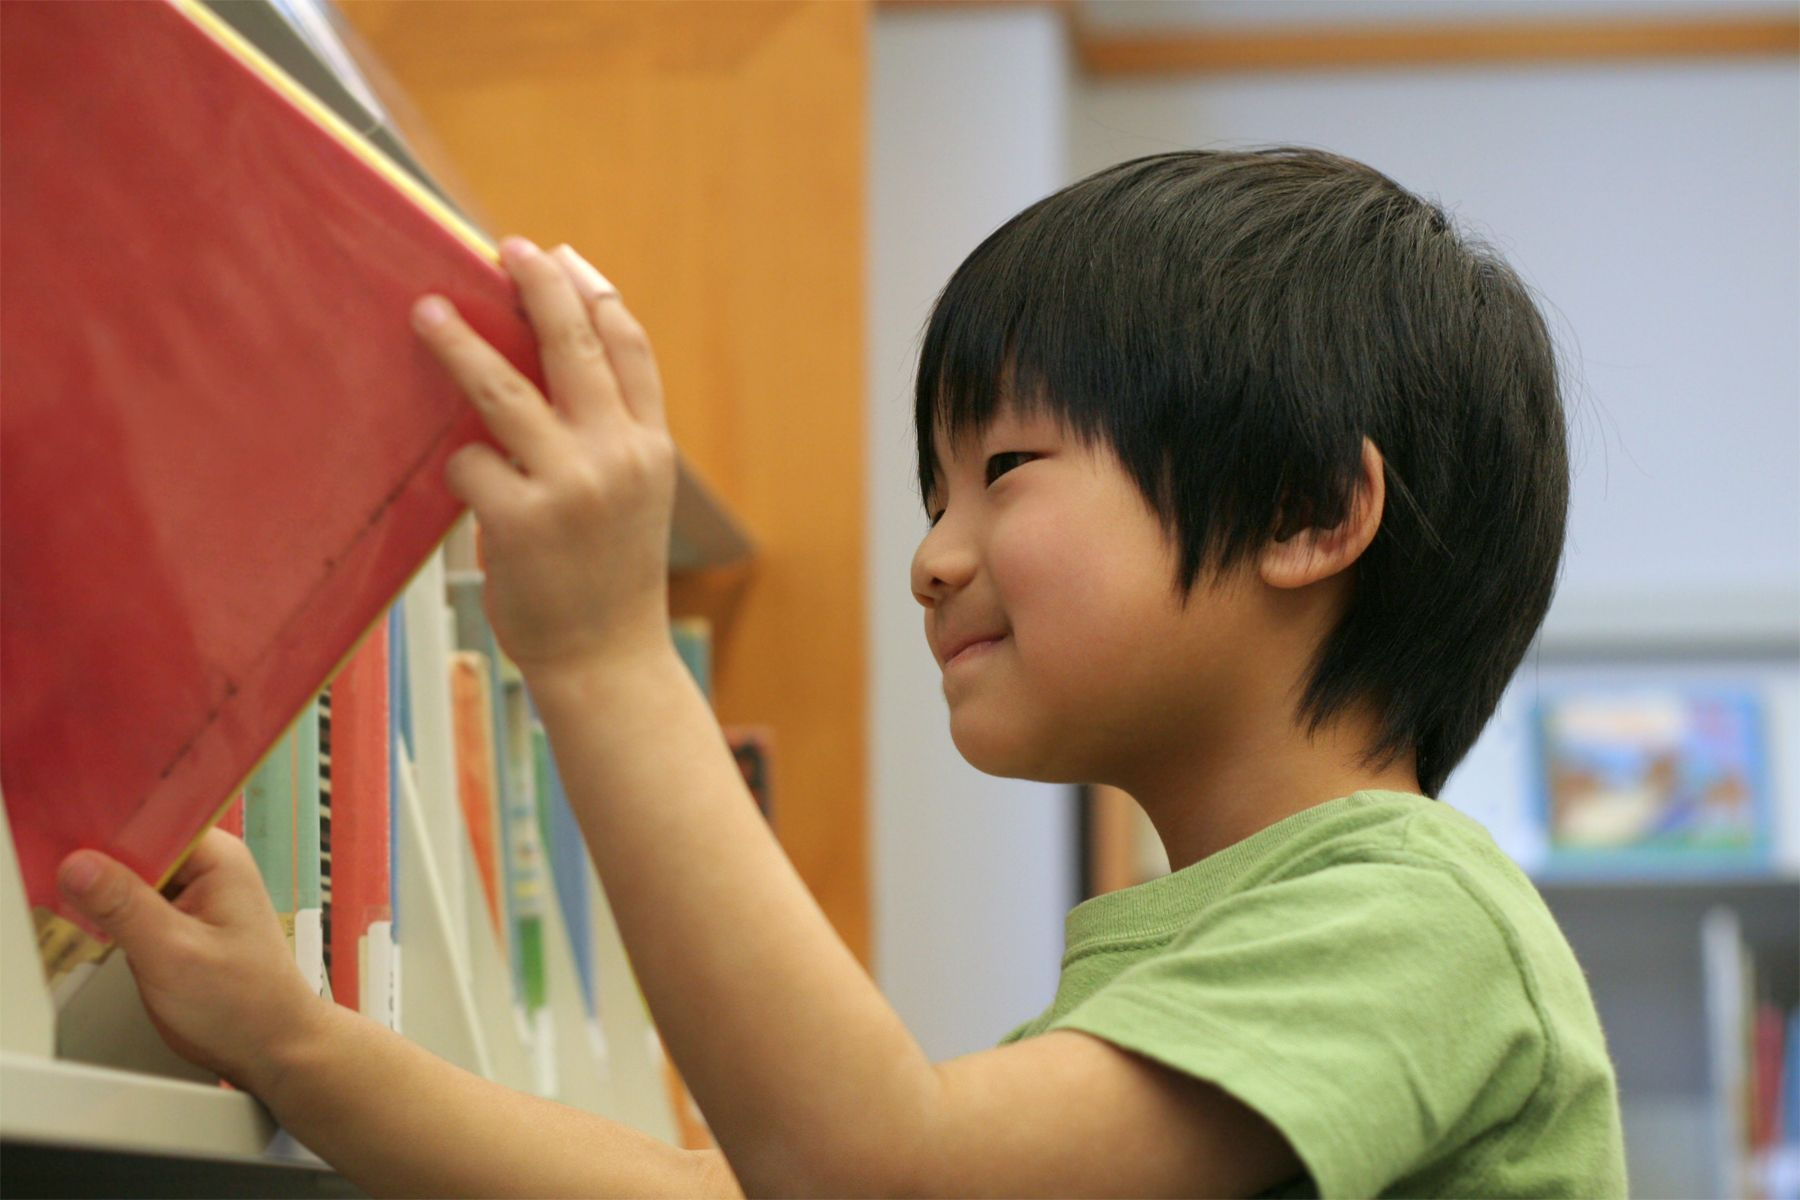 Elementary school student putting a book away on a shelf